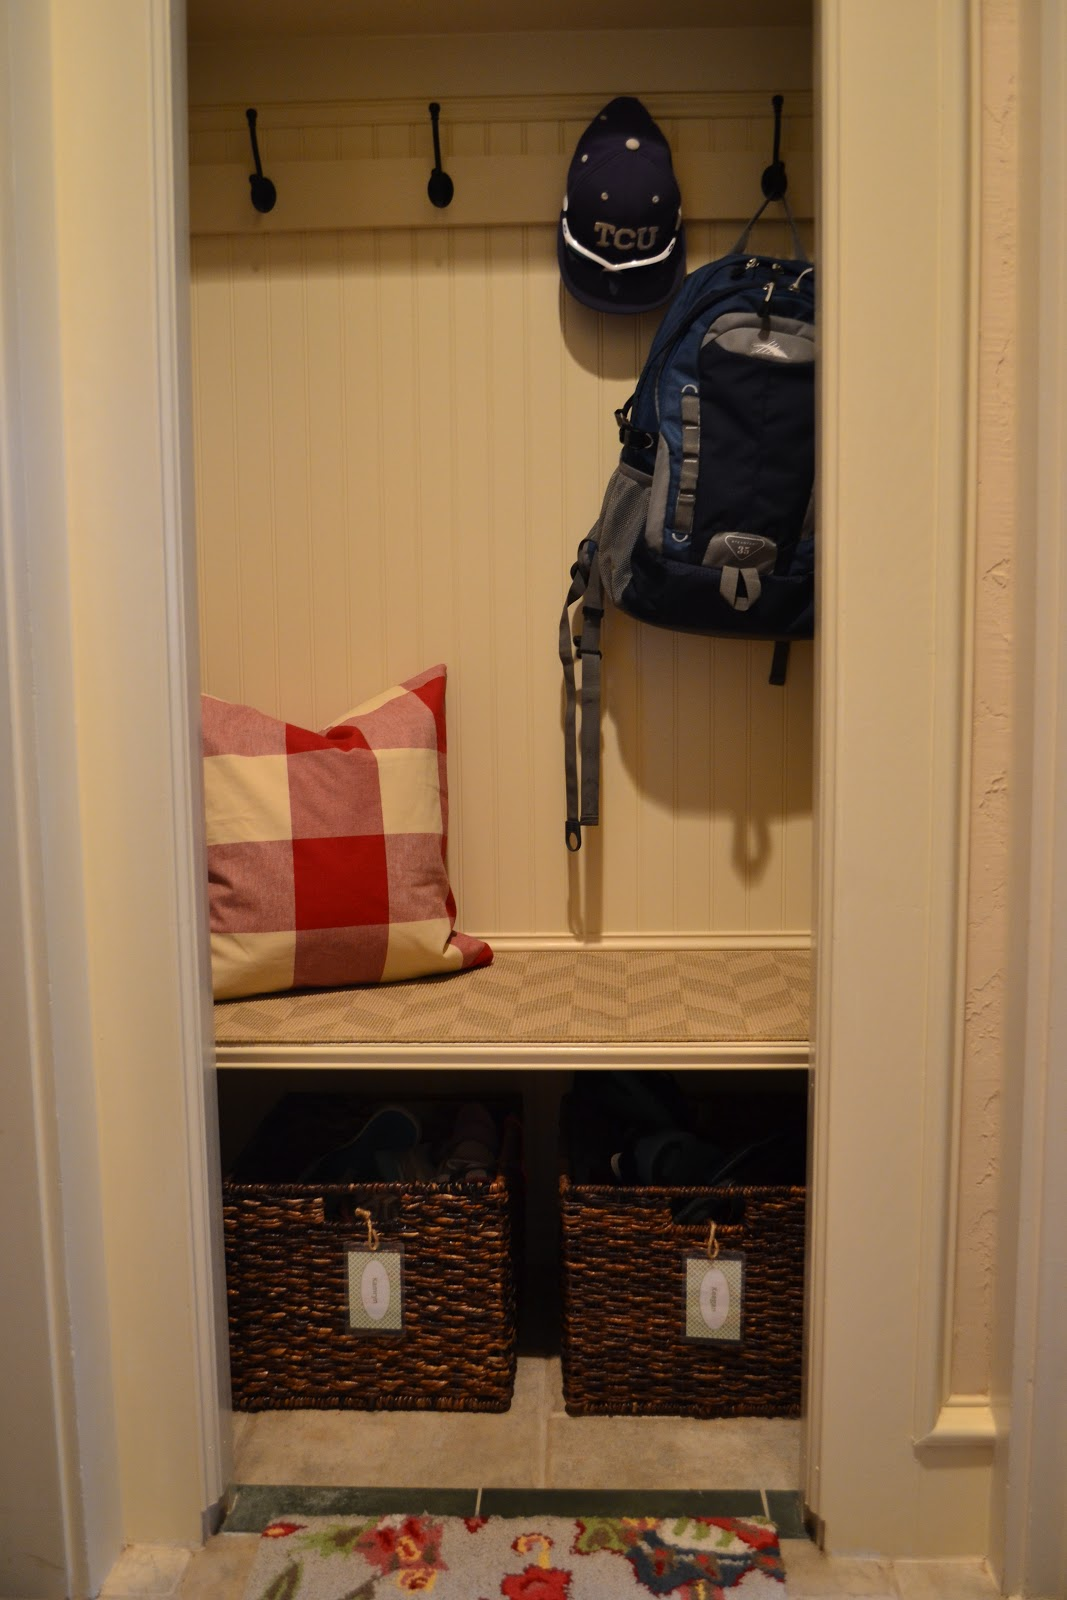 Convert Coat Closet To Mudroom With Convert Coat Closet To Mudroom.